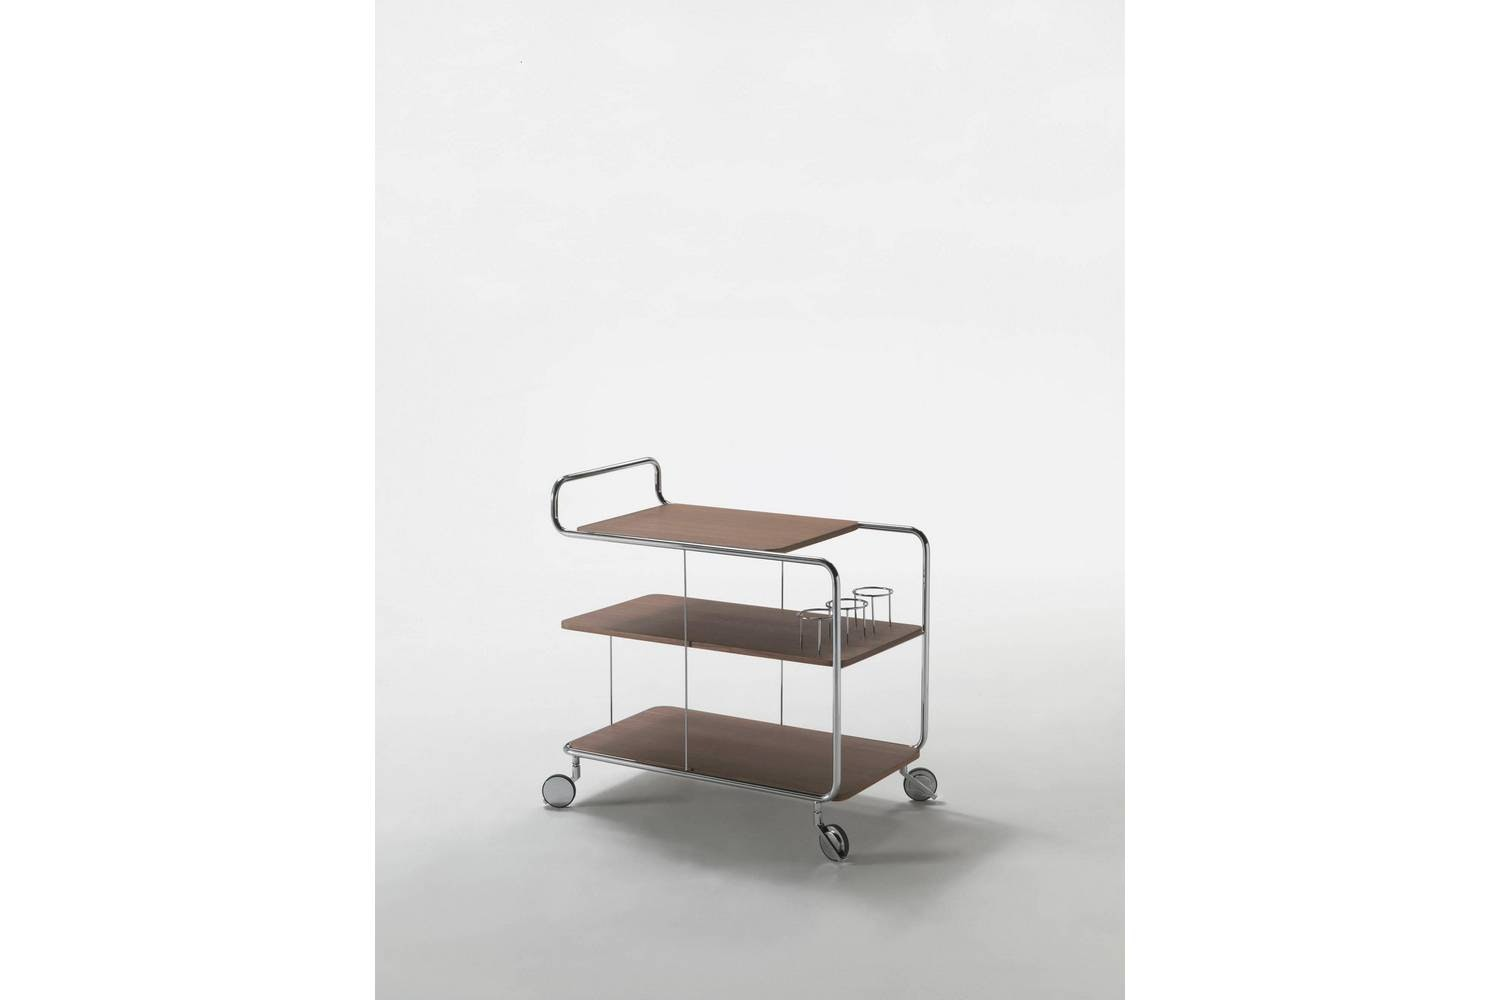 Oscar Trolley by G. Azzarello for Porada